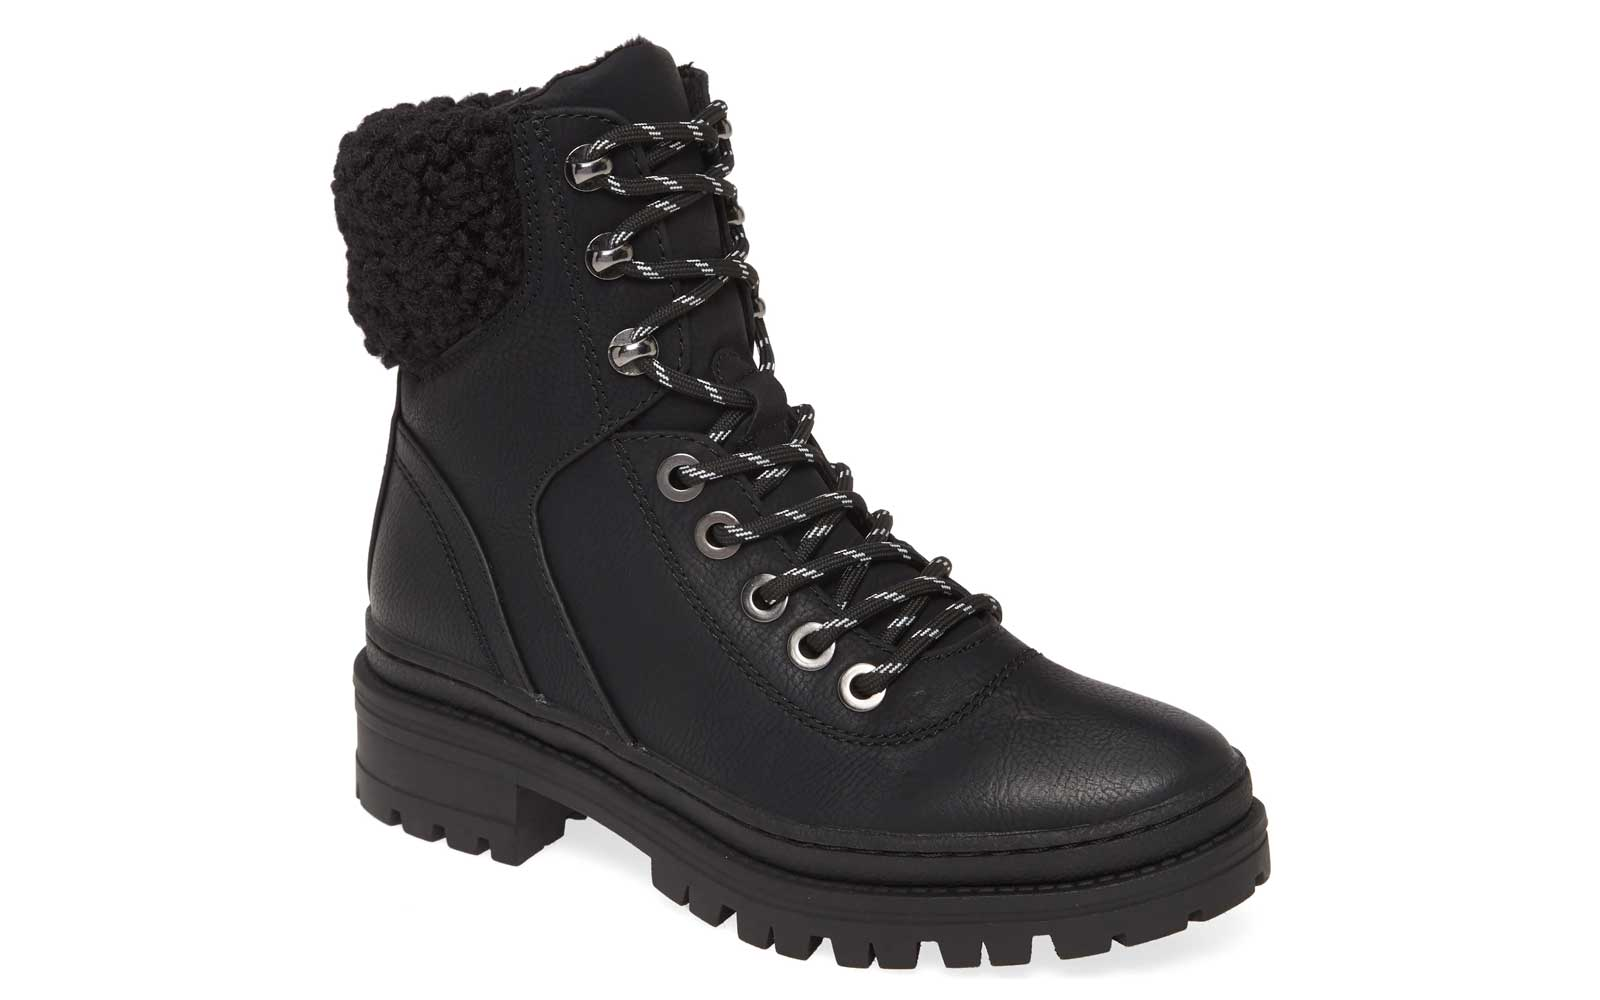 Black Leather Lace-up Women's Boots